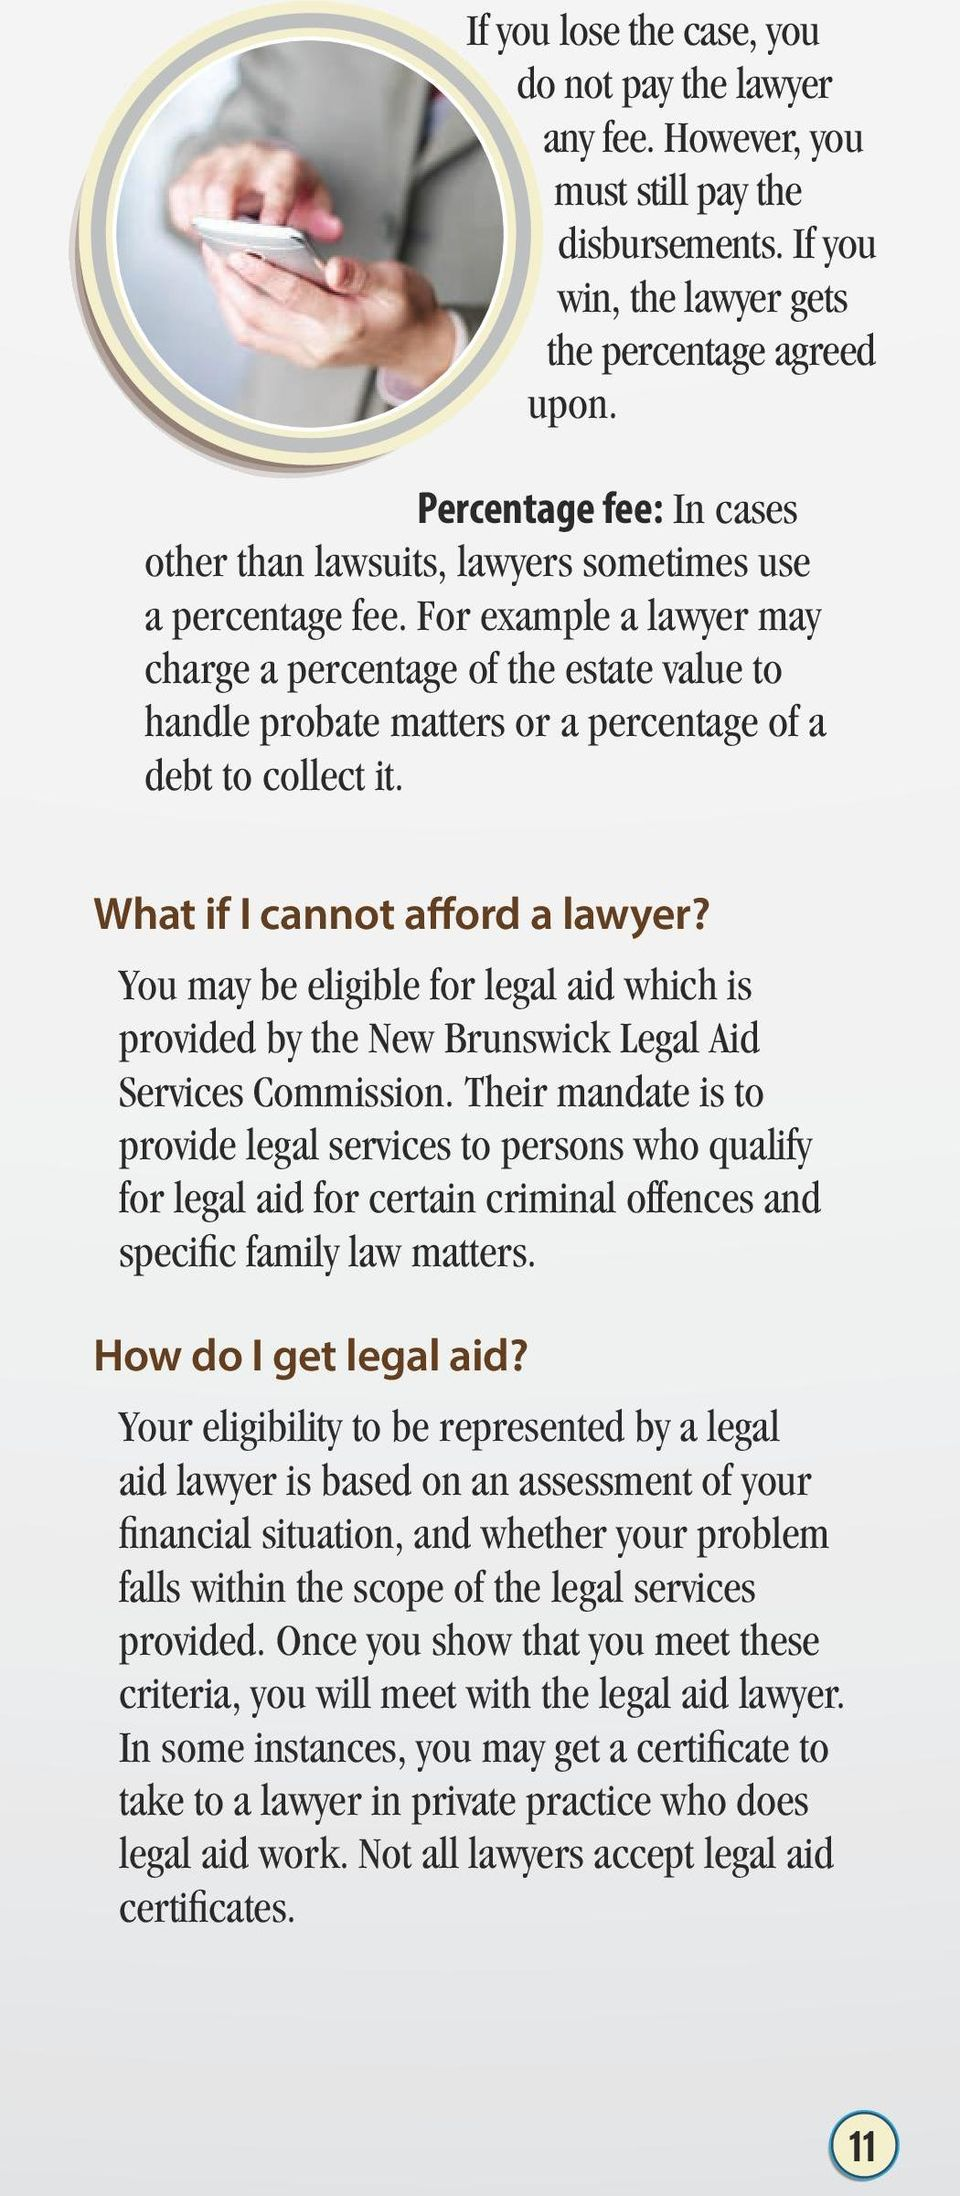 For example a lawyer may charge a percentage of the estate value to handle probate matters or a percentage of a debt to collect it. What if I cannot afford a lawyer?